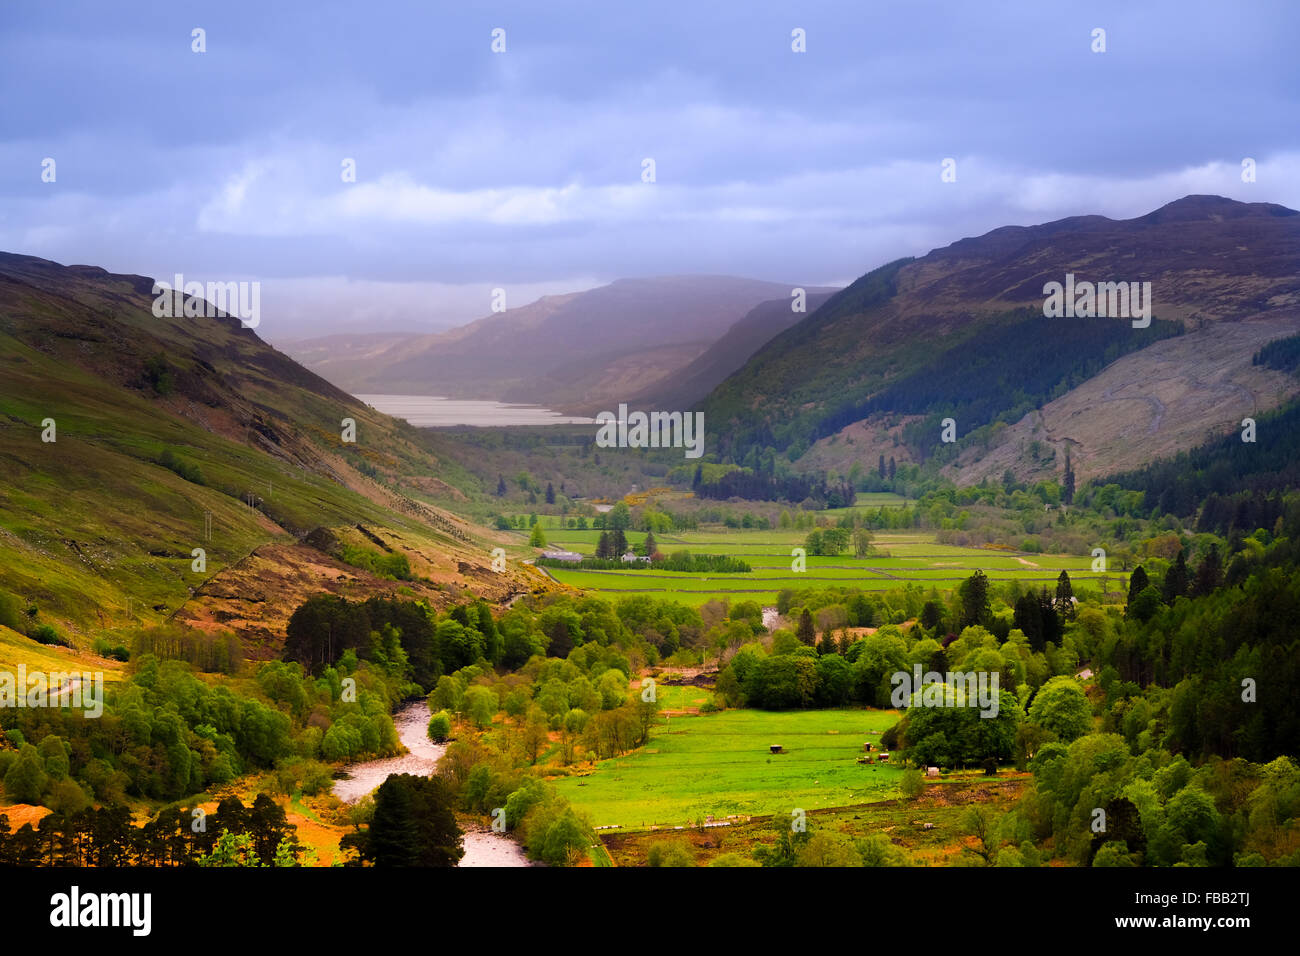 A beautiful vista view of Scotland's west coast near Ullapool. - Stock Image